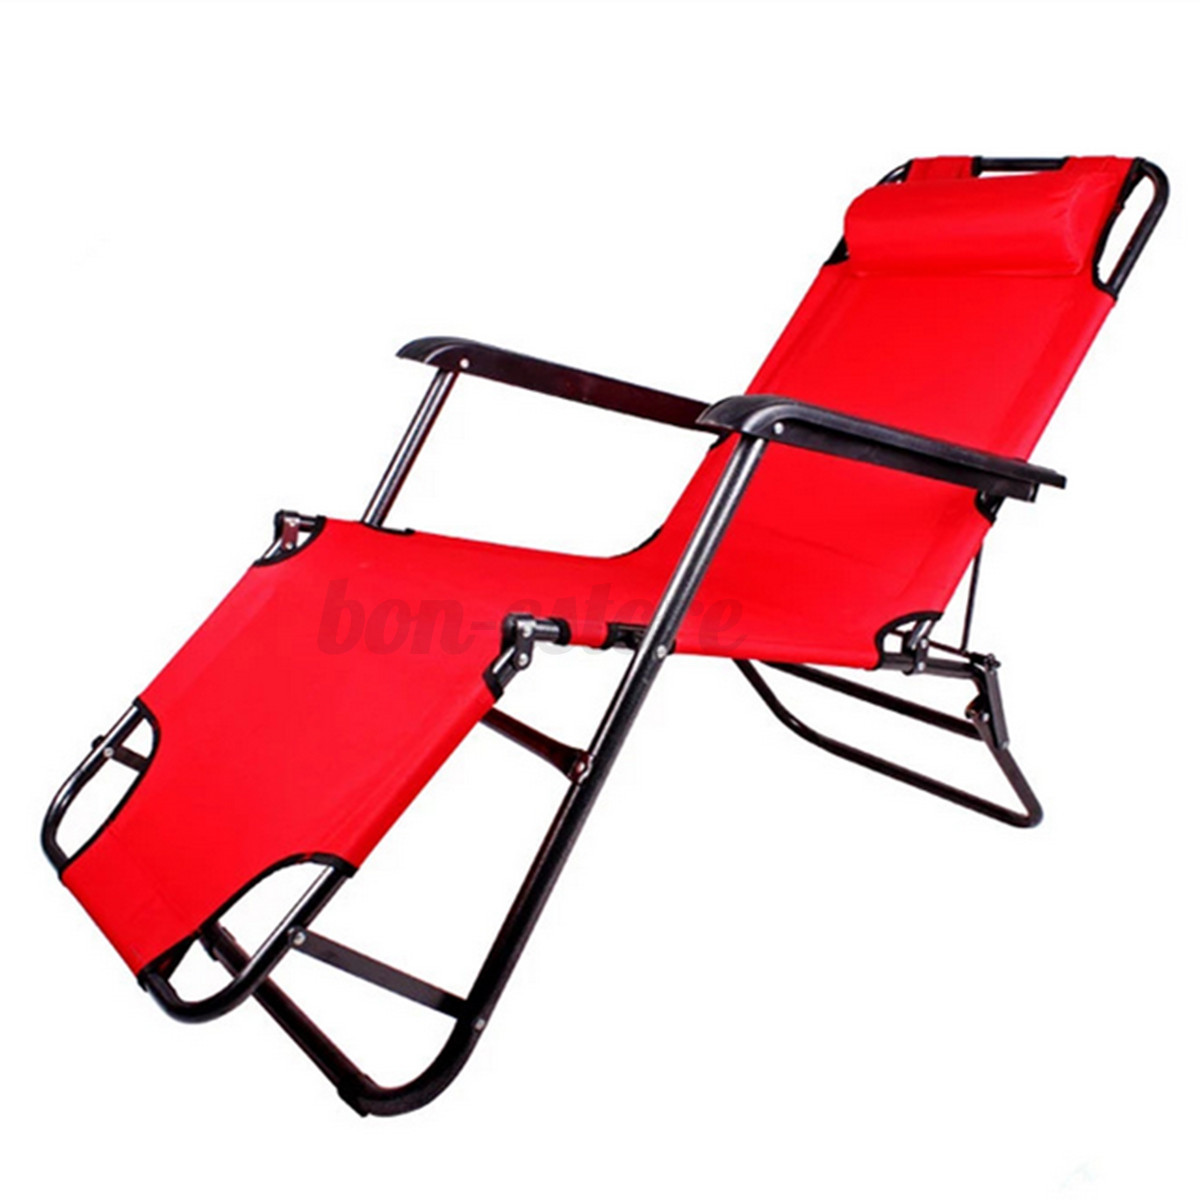 Outdoor folding reclining beach sun patio chaise lounge for Beach chaise lounger